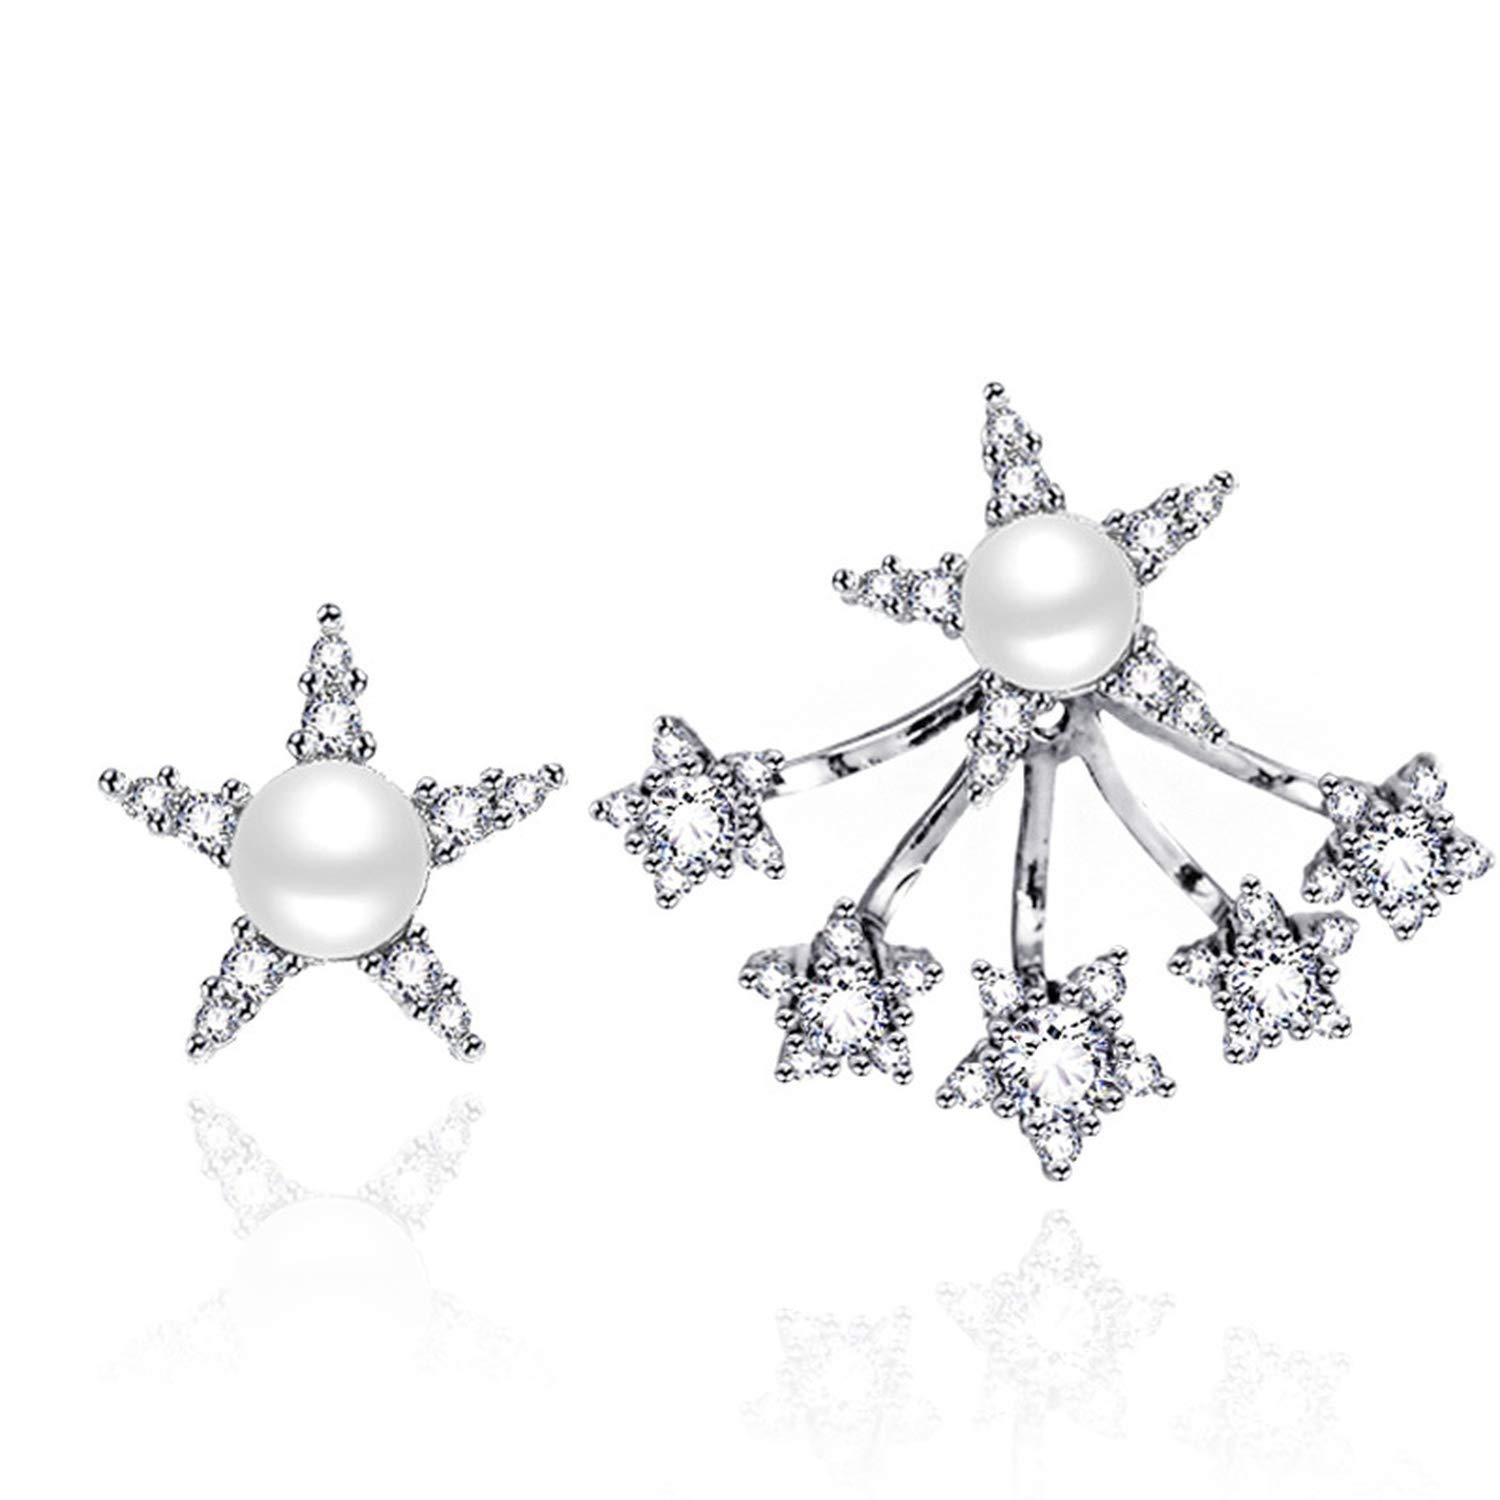 Beauty-OU Silver 925 Women Earrings With AAA Zircon Top Quality Simulated Pearl Star Stud Earings 925 Female Jewelry OPSE37